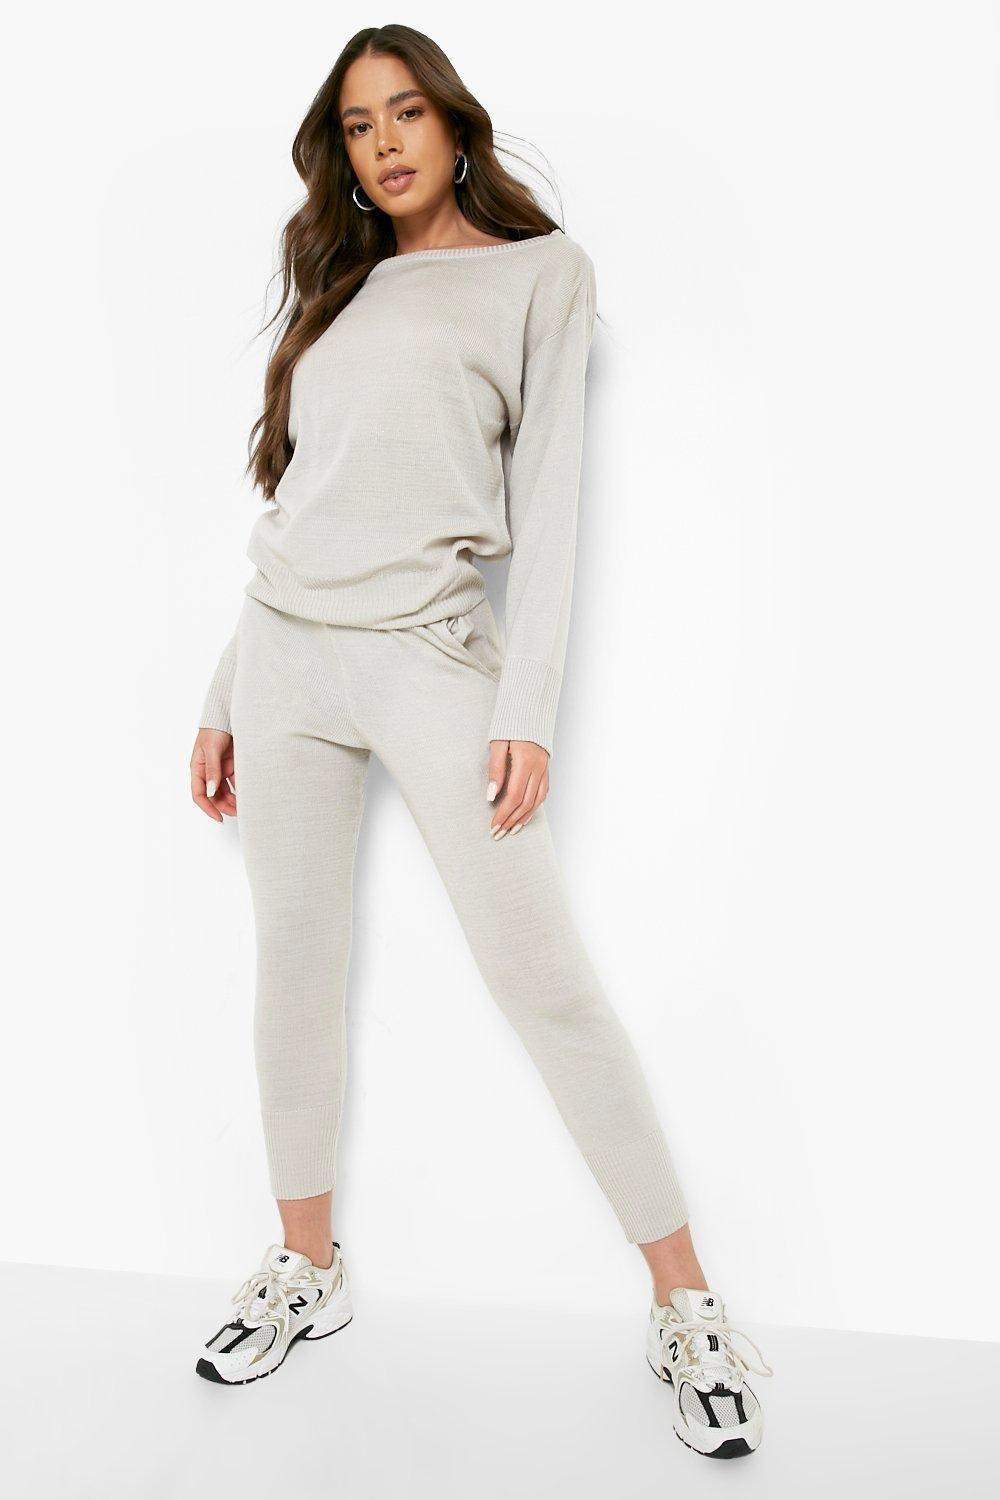 boohoo Womens Boutique Heavy Knitted Loungewear Set - Grey - S/M, Grey